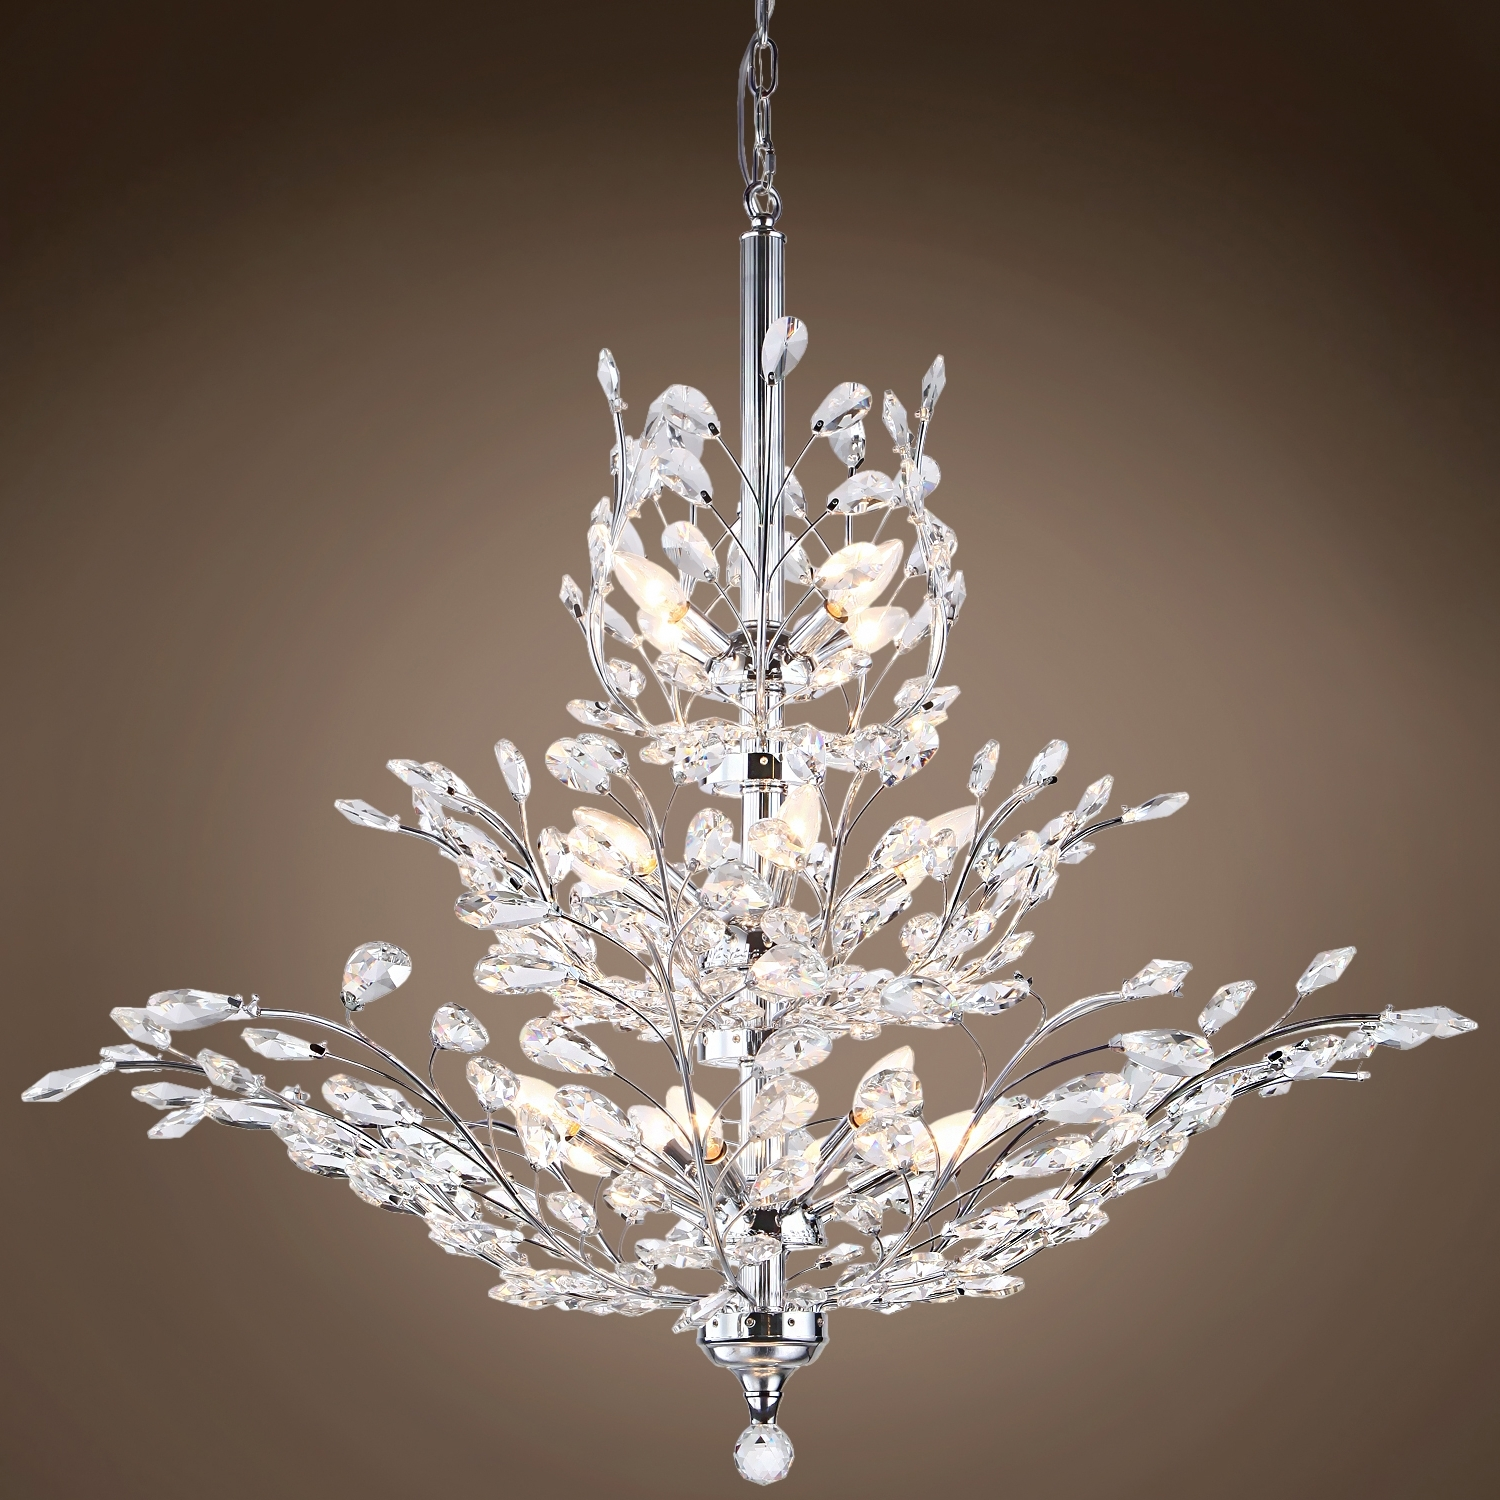 Most Recent Crystal Branch Chandelier With Regard To Joshua Marshal 700109 Branch Of Light 13 Light Chrome Chandelier (View 13 of 20)